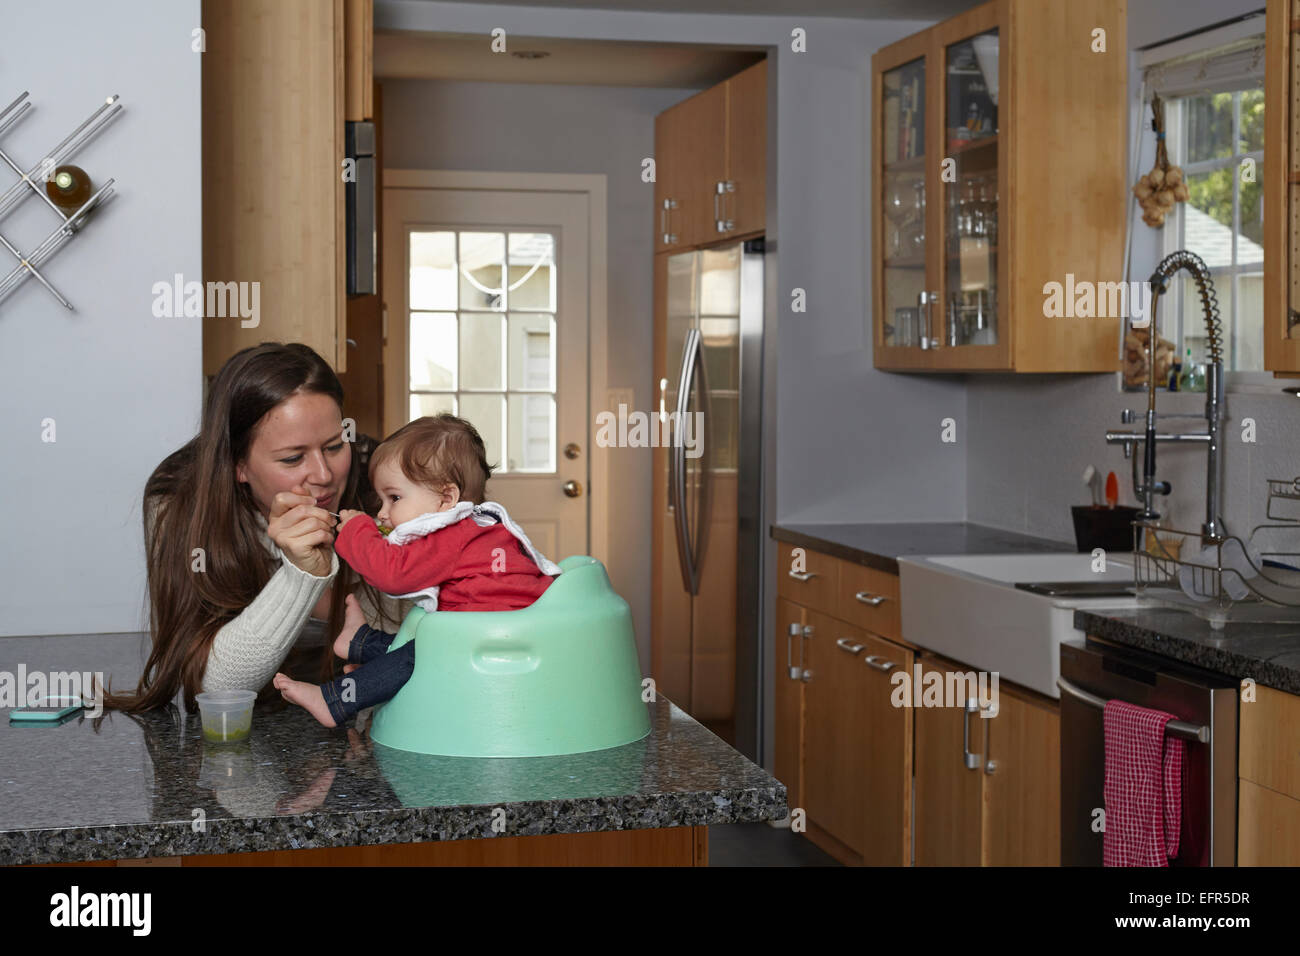 Mother feeding baby girl on kitchen counter - Stock Image